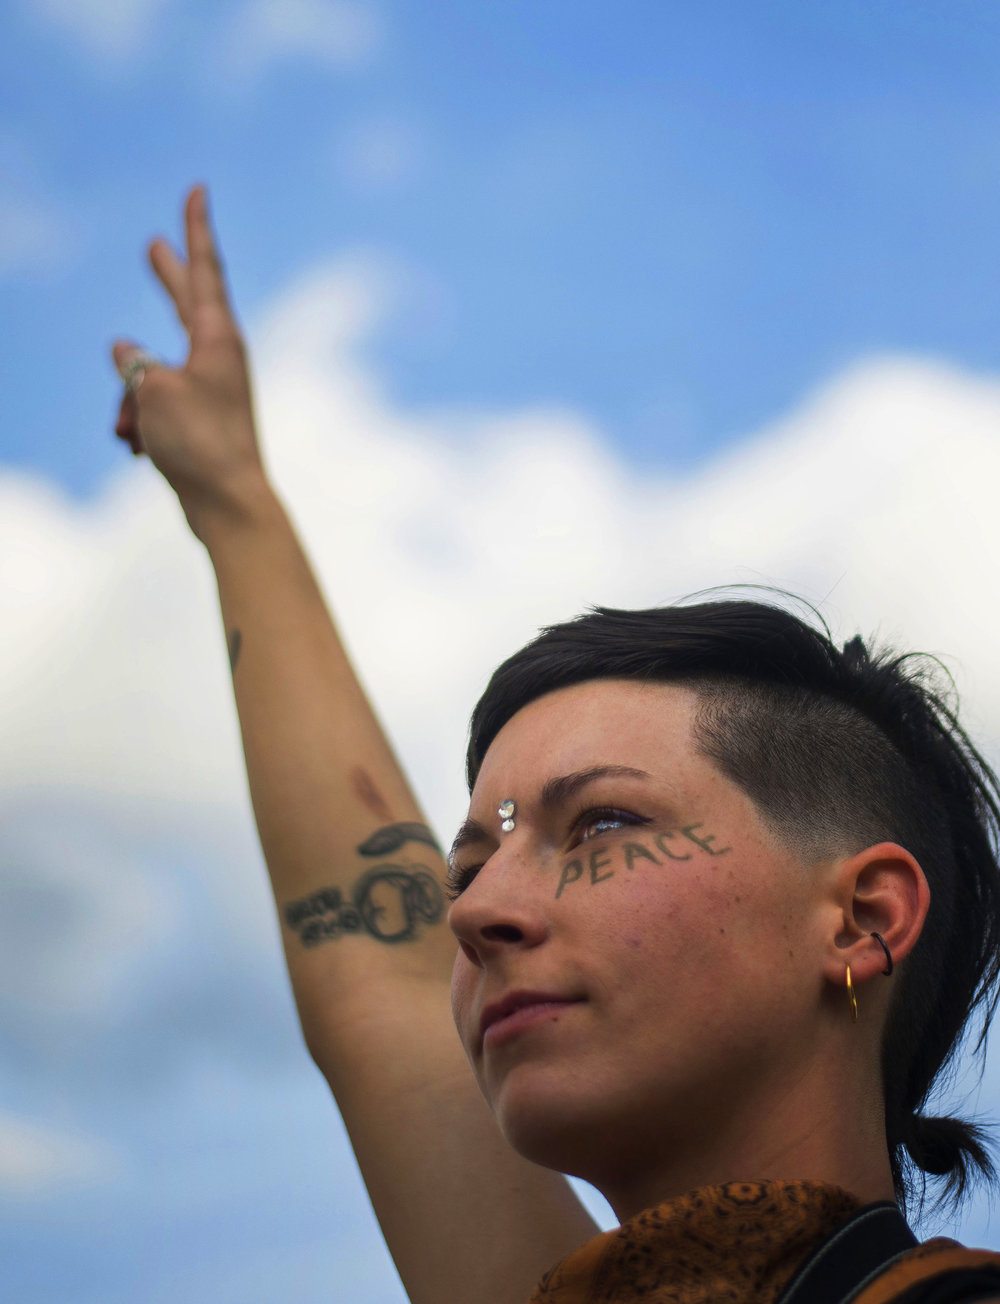 Audrey Conn, 25, stands with a peace sign in the air on the corner of Clinton and Berry streets on June 10, 2016, during the Silent Protest. Many passerbys took photos and videos; those driving honked their horns.